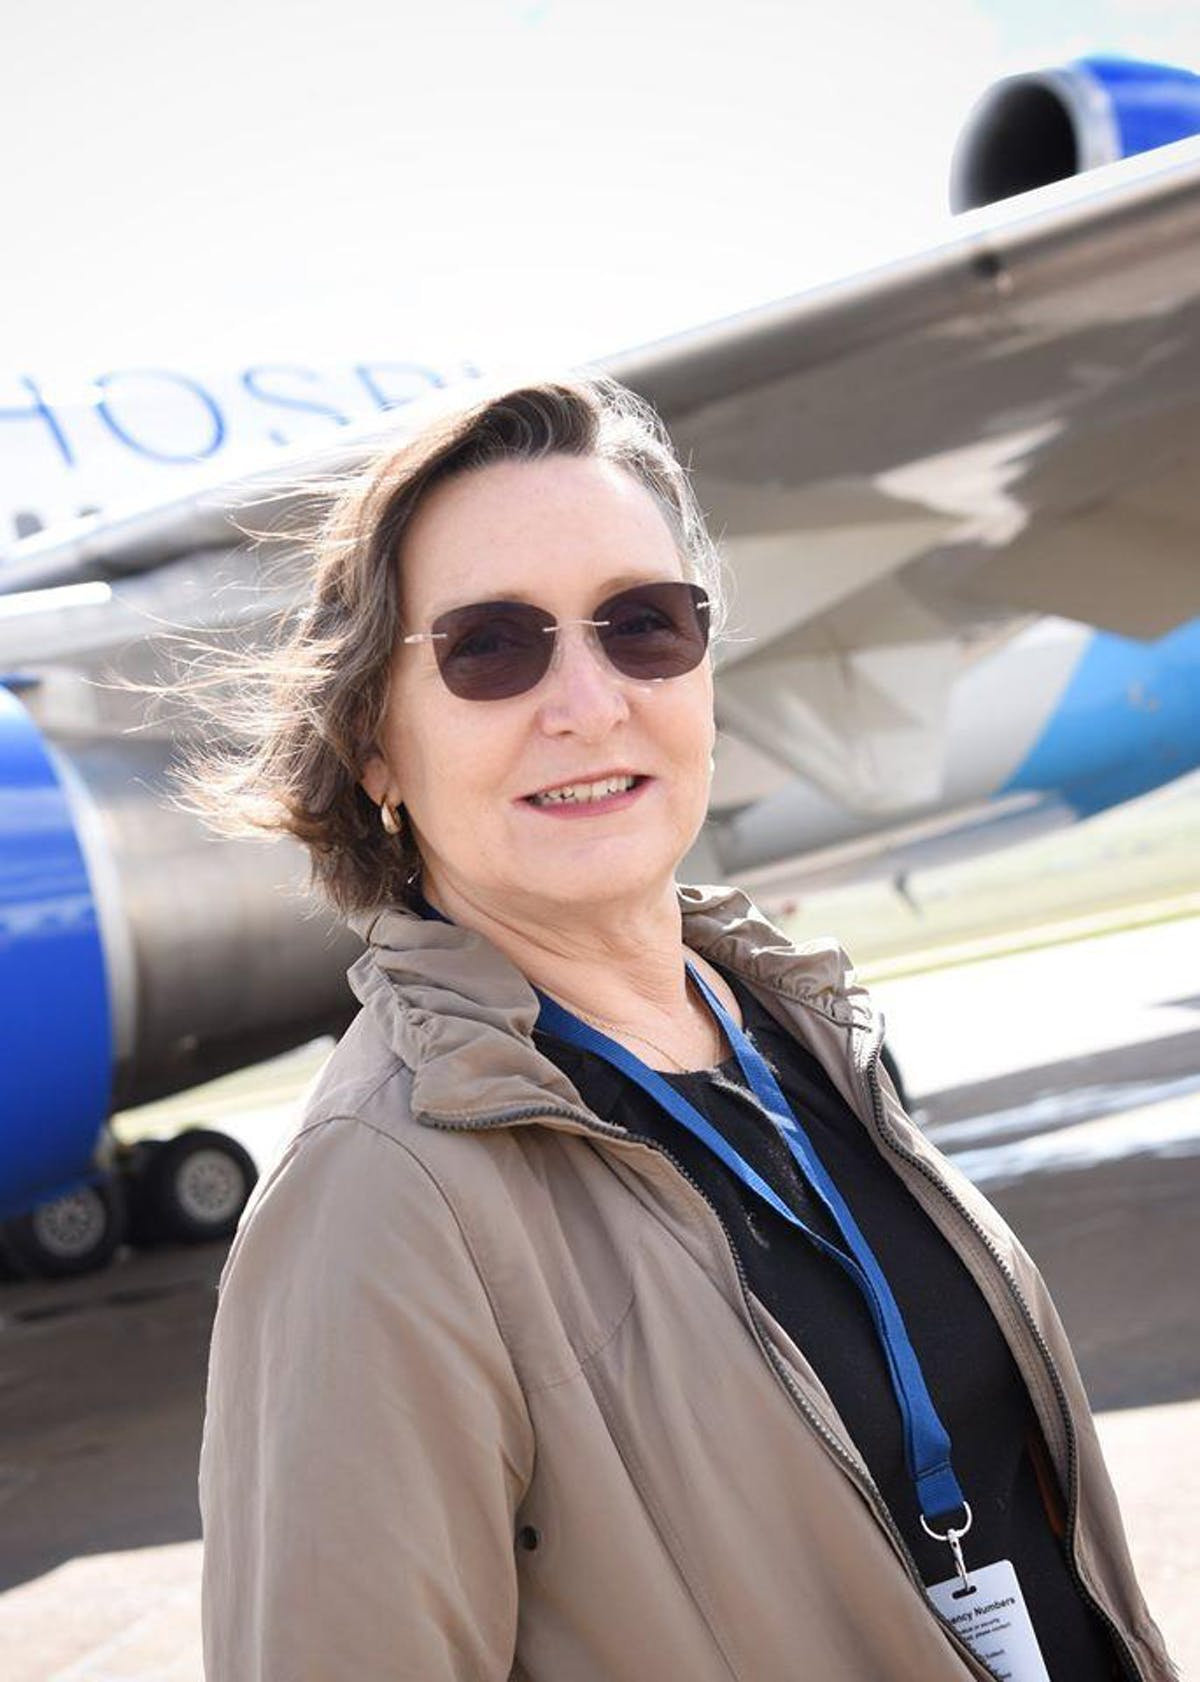 Dr. Mary O'Hara is a pediatric ophthalmologist at UC Davis, Sacramento, and a member of Orbis Volunteer Faculty